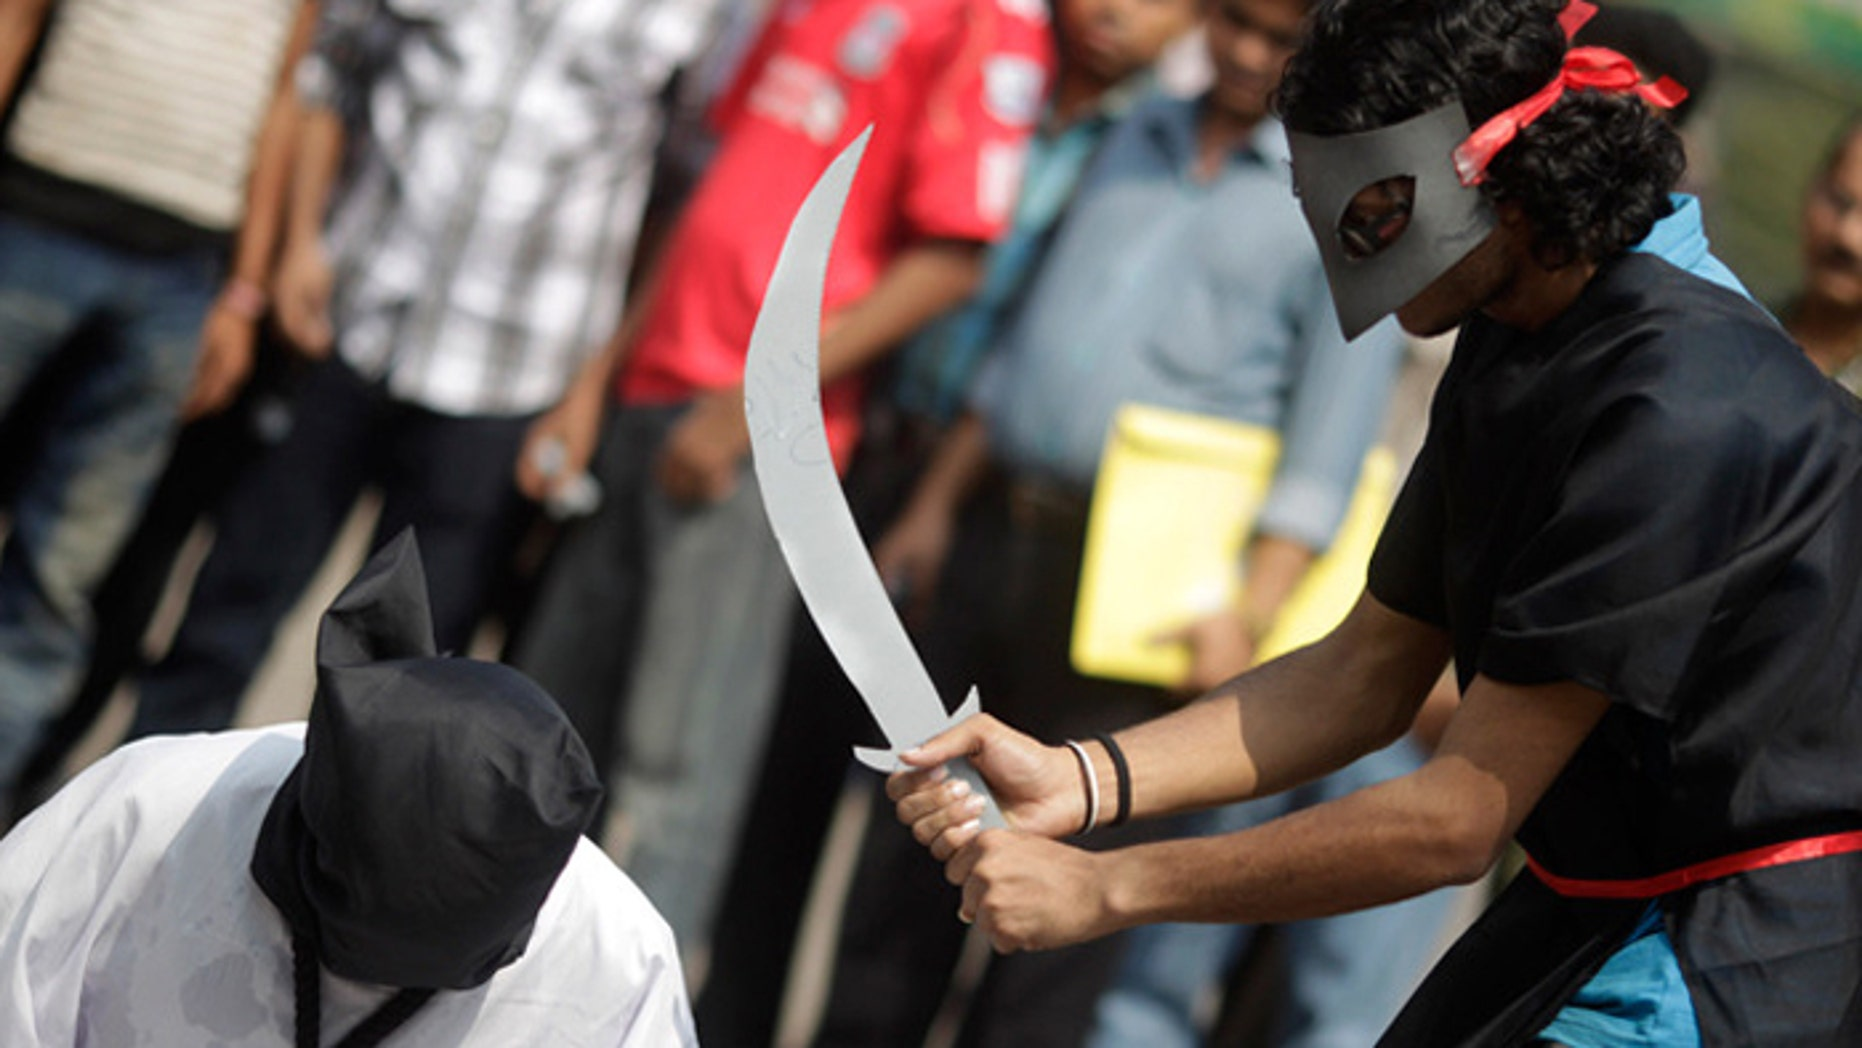 Demonstrators stage a mock beheading to protest executions in Saudi Arabia (Reuters)